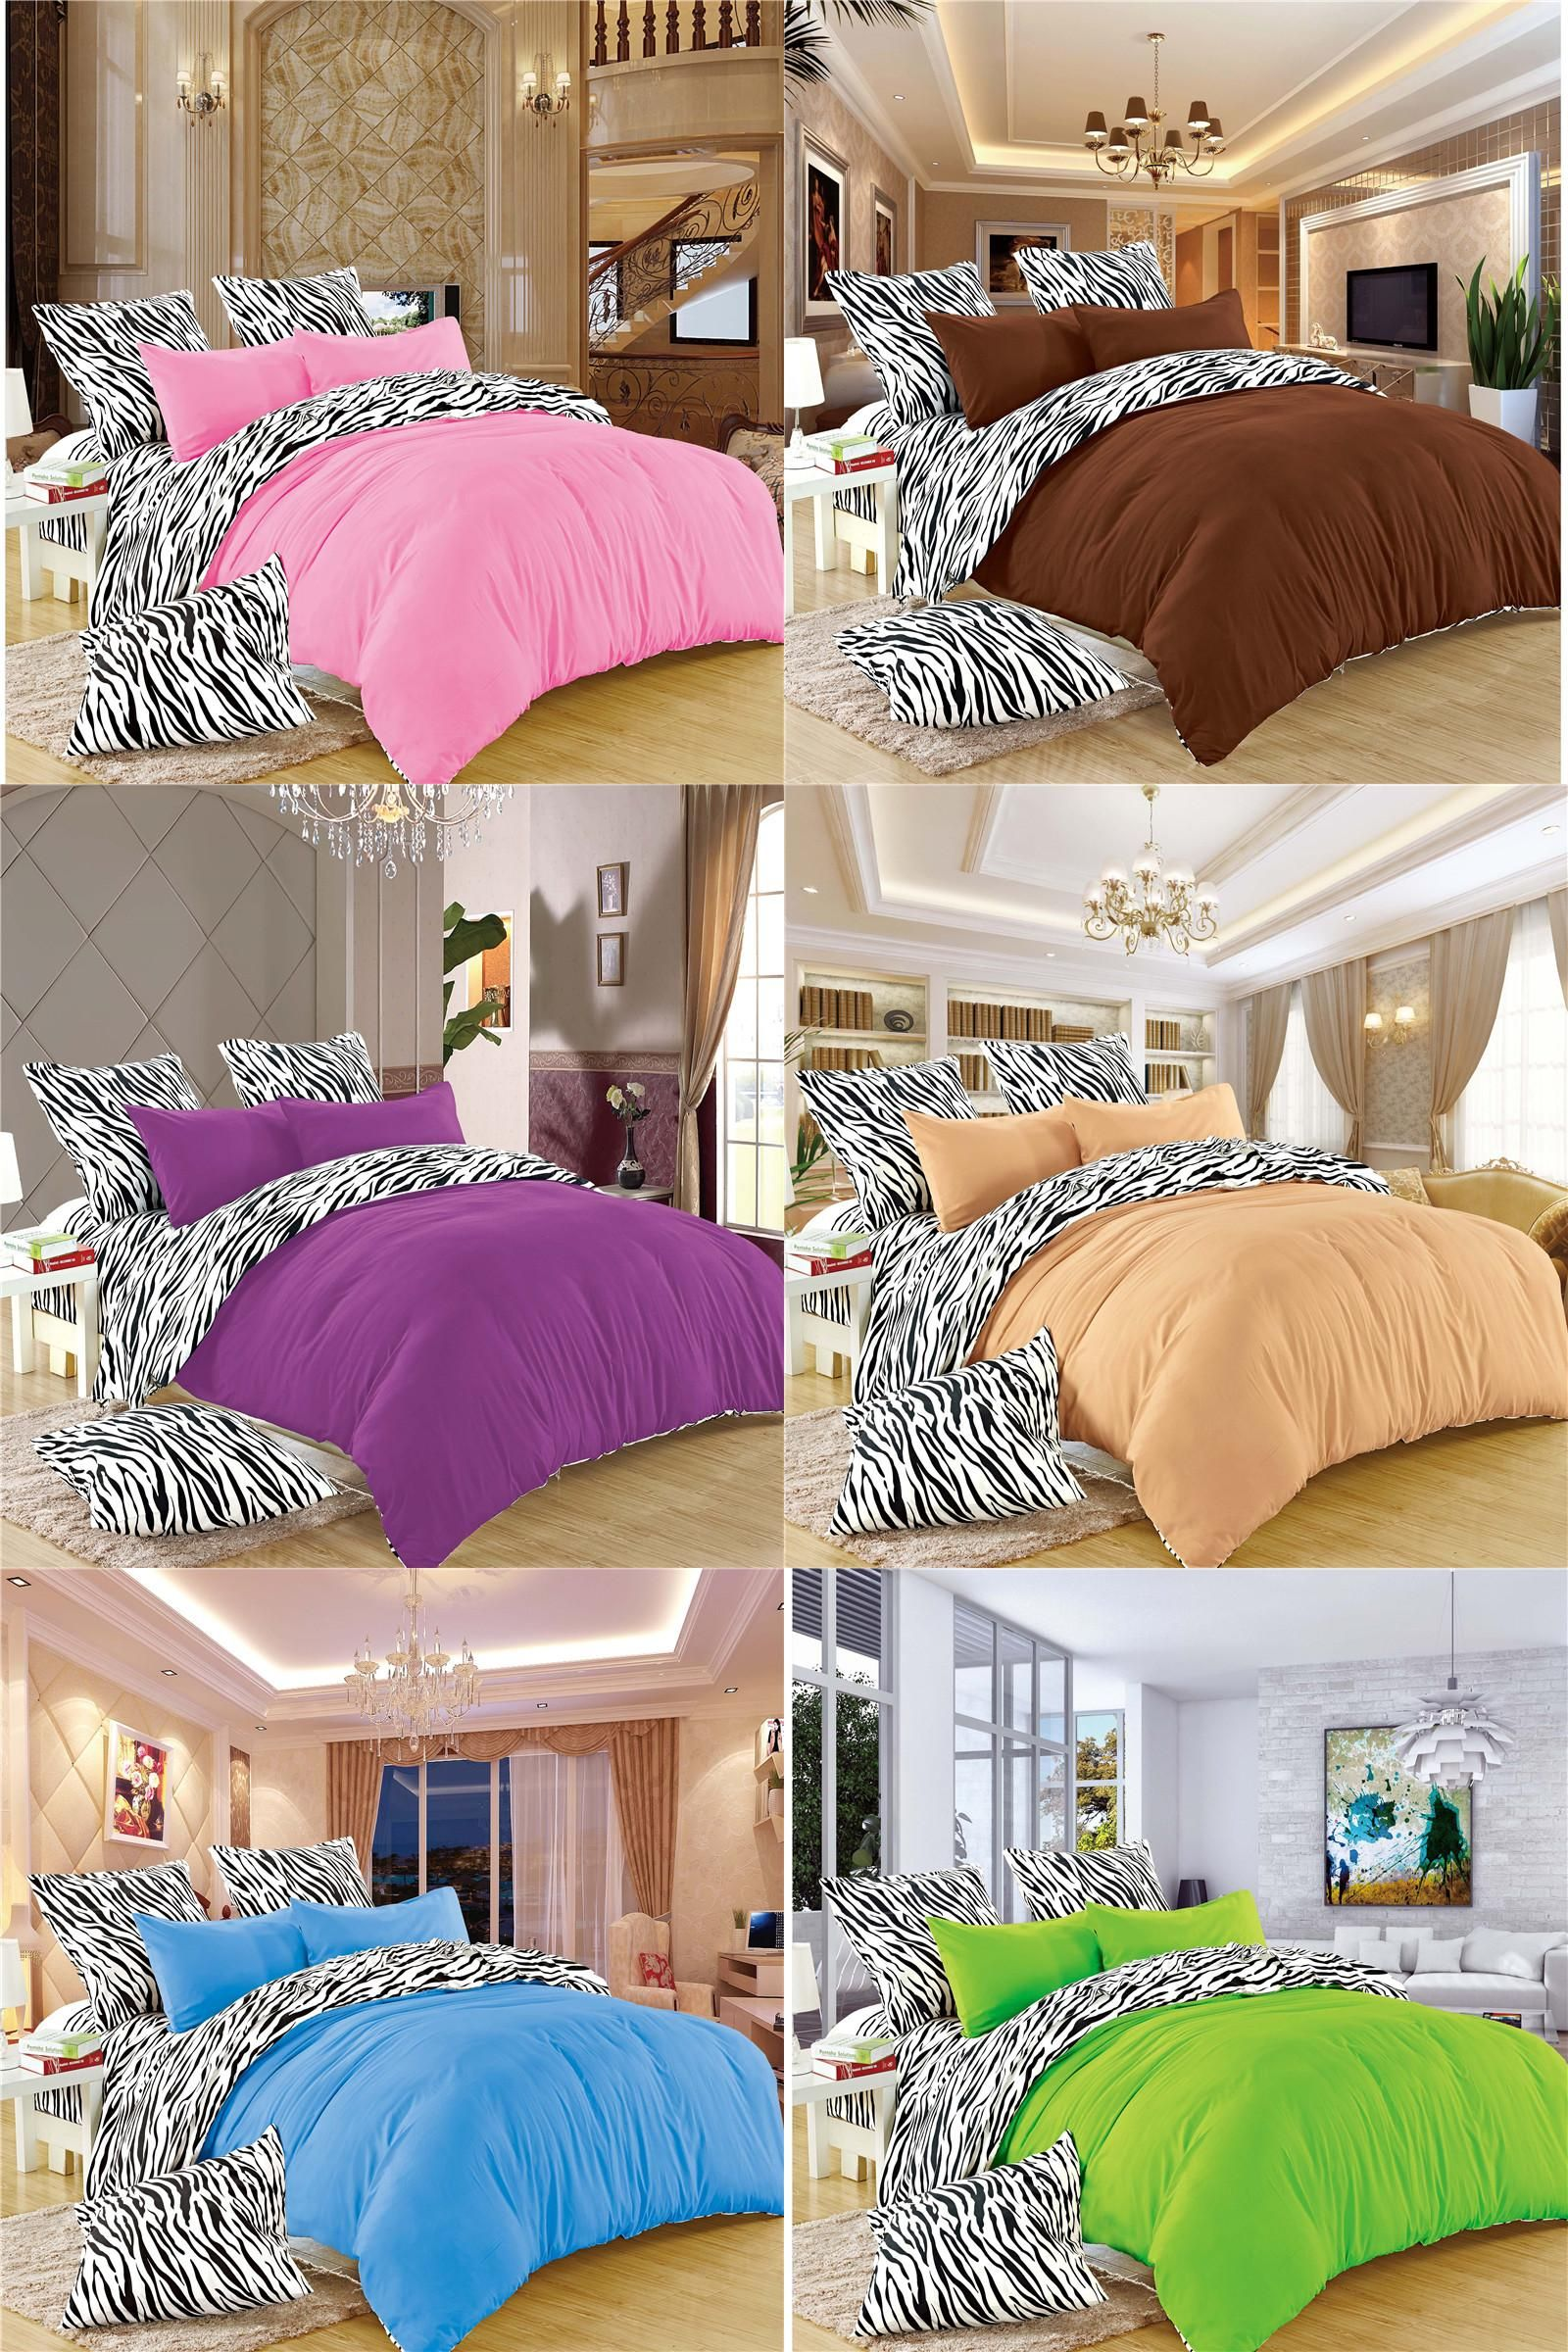 blanket bed a of full duvet duvets comforter which with cover size buy covers set coverlet difference filling down to comforters do into use is whats where in the bedding between and how you best